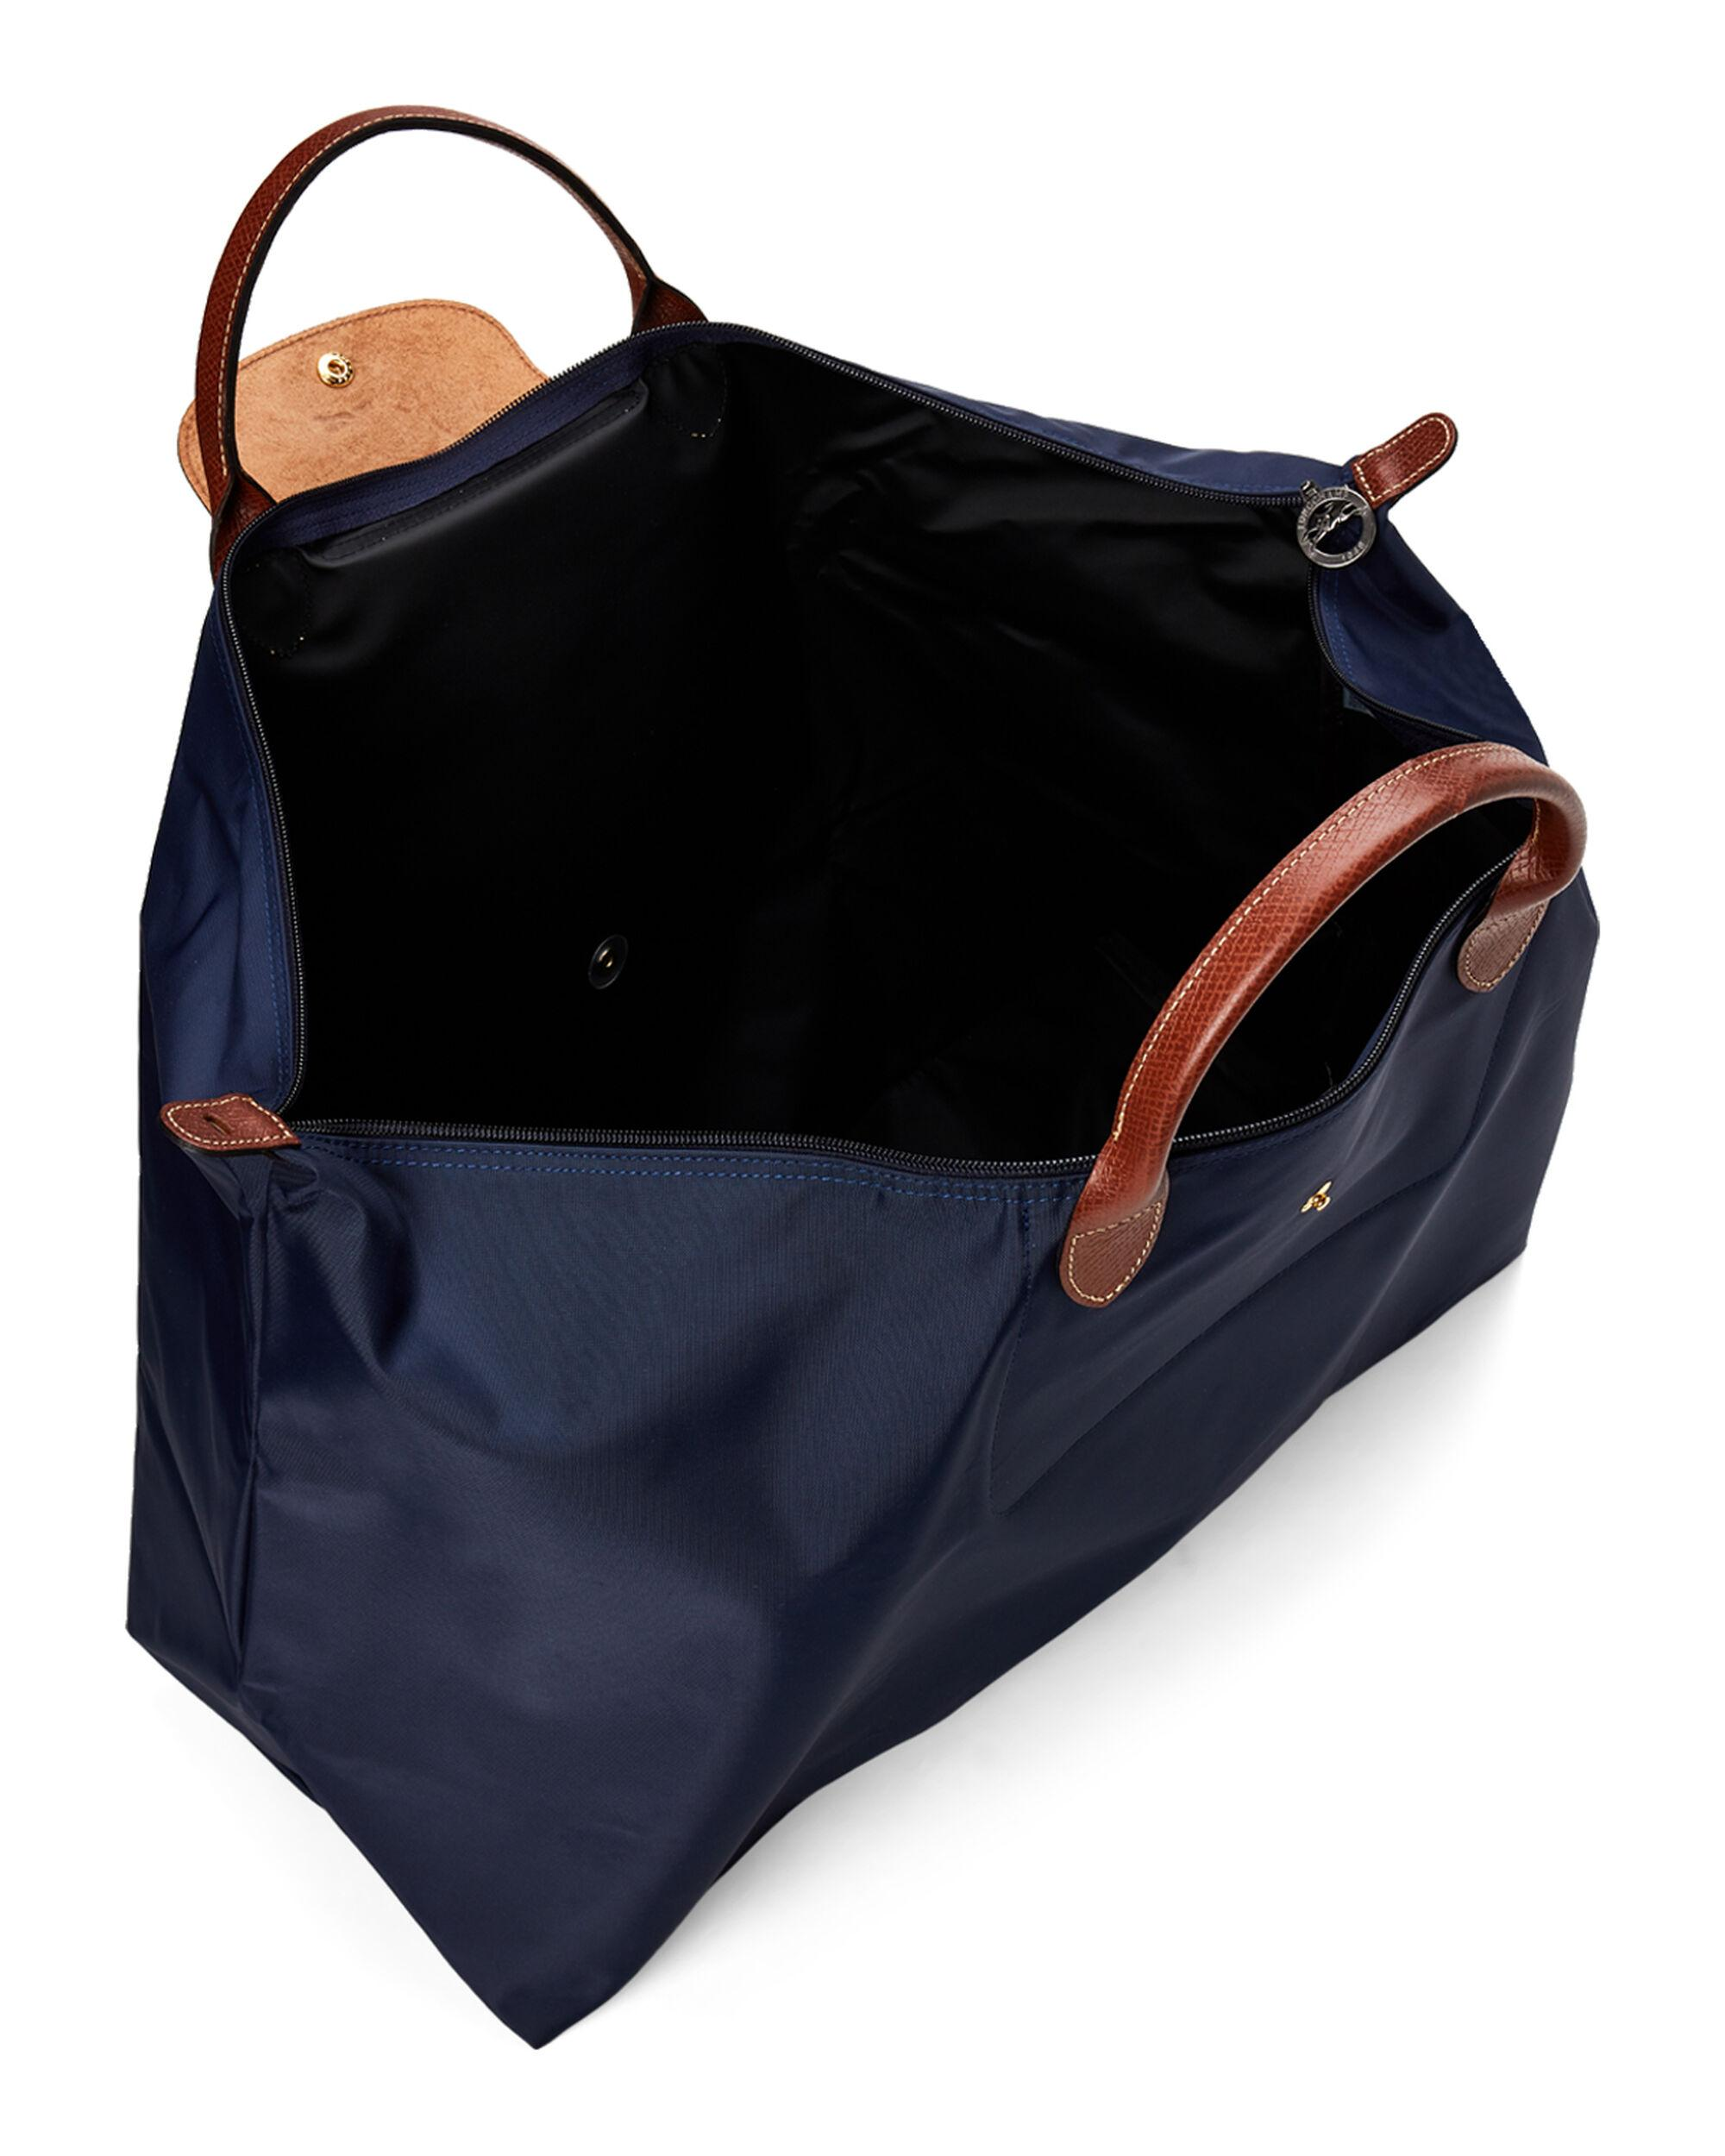 47ade993442 Longchamp Le Pliage Neo Travel Bag in Blue - Lyst